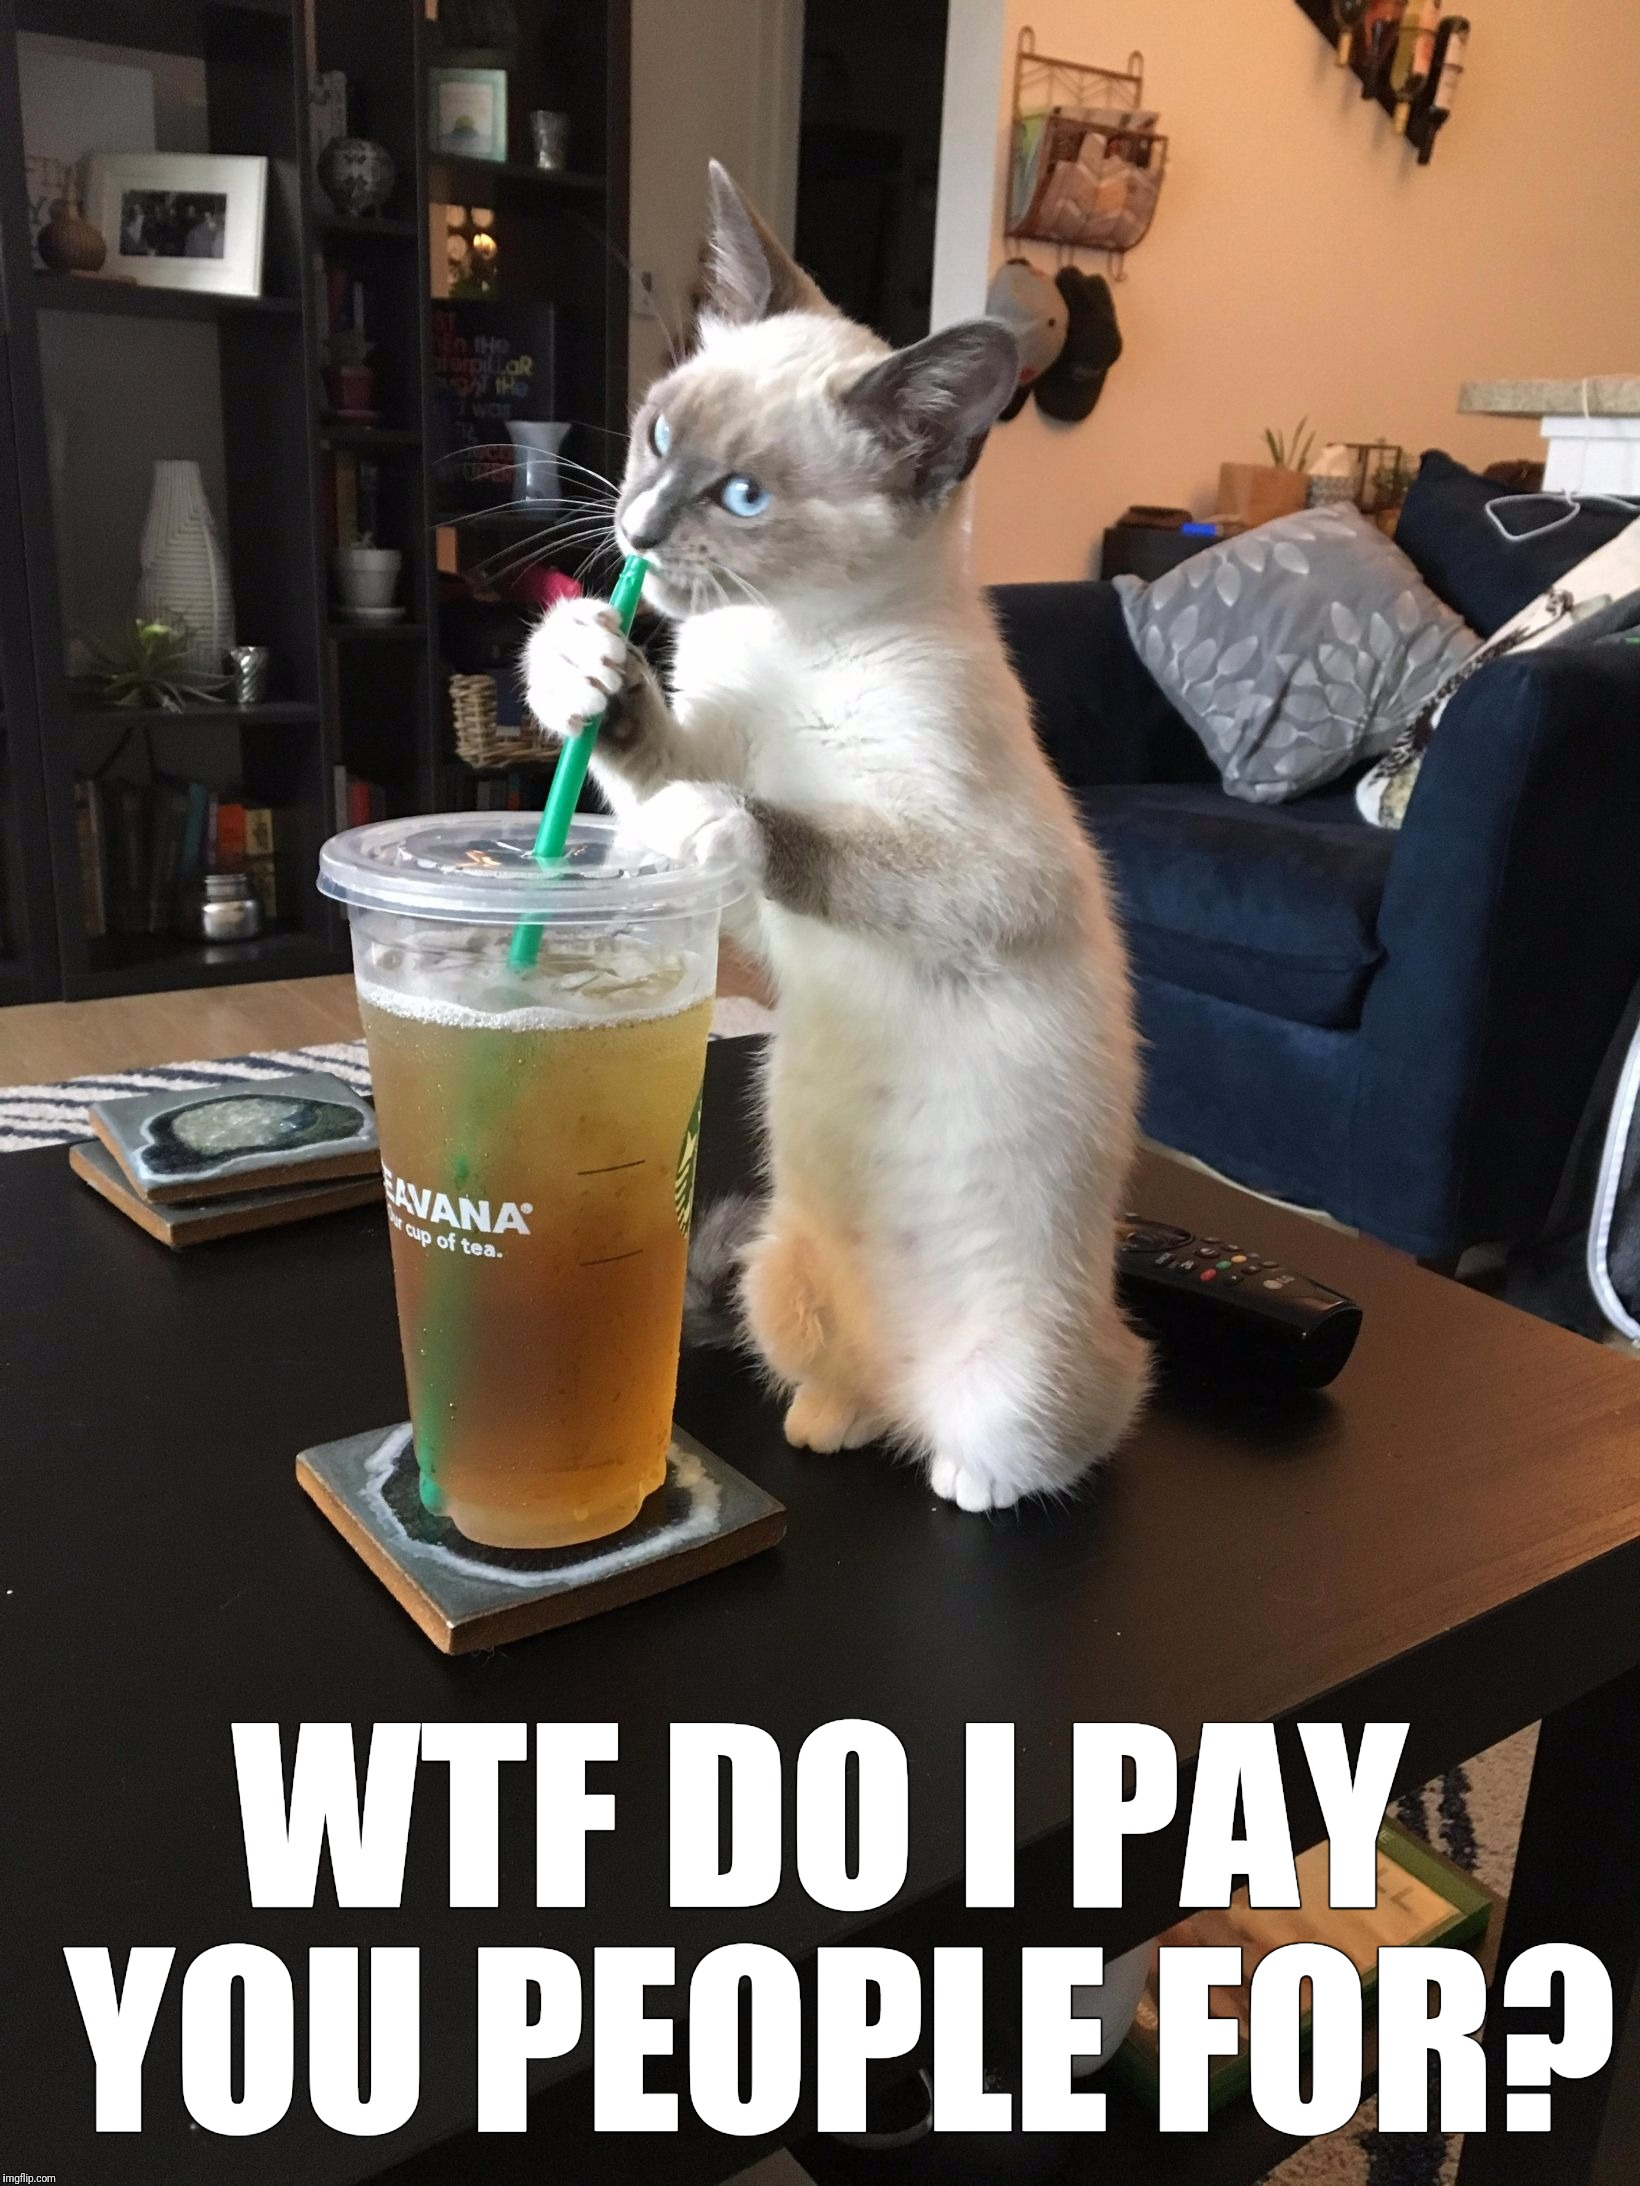 Get to work bitches... | WTF DO I PAY YOU PEOPLE FOR? | image tagged in iced tea cat | made w/ Imgflip meme maker